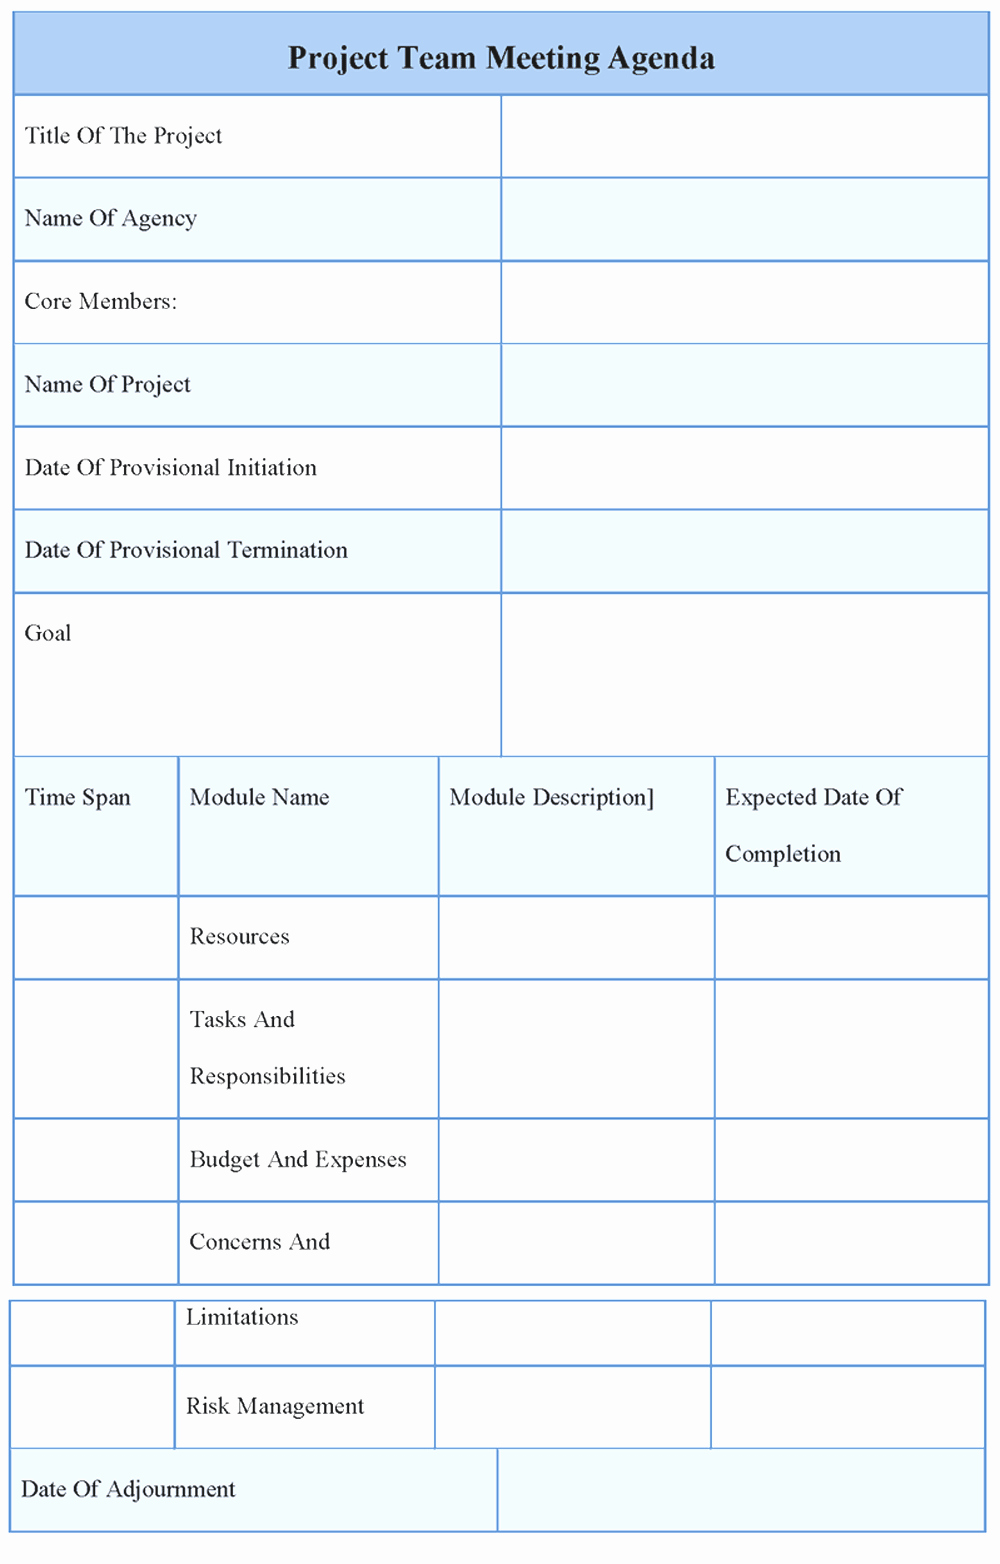 Project Meeting Agenda Template New Agenda Template Word Example Mughals